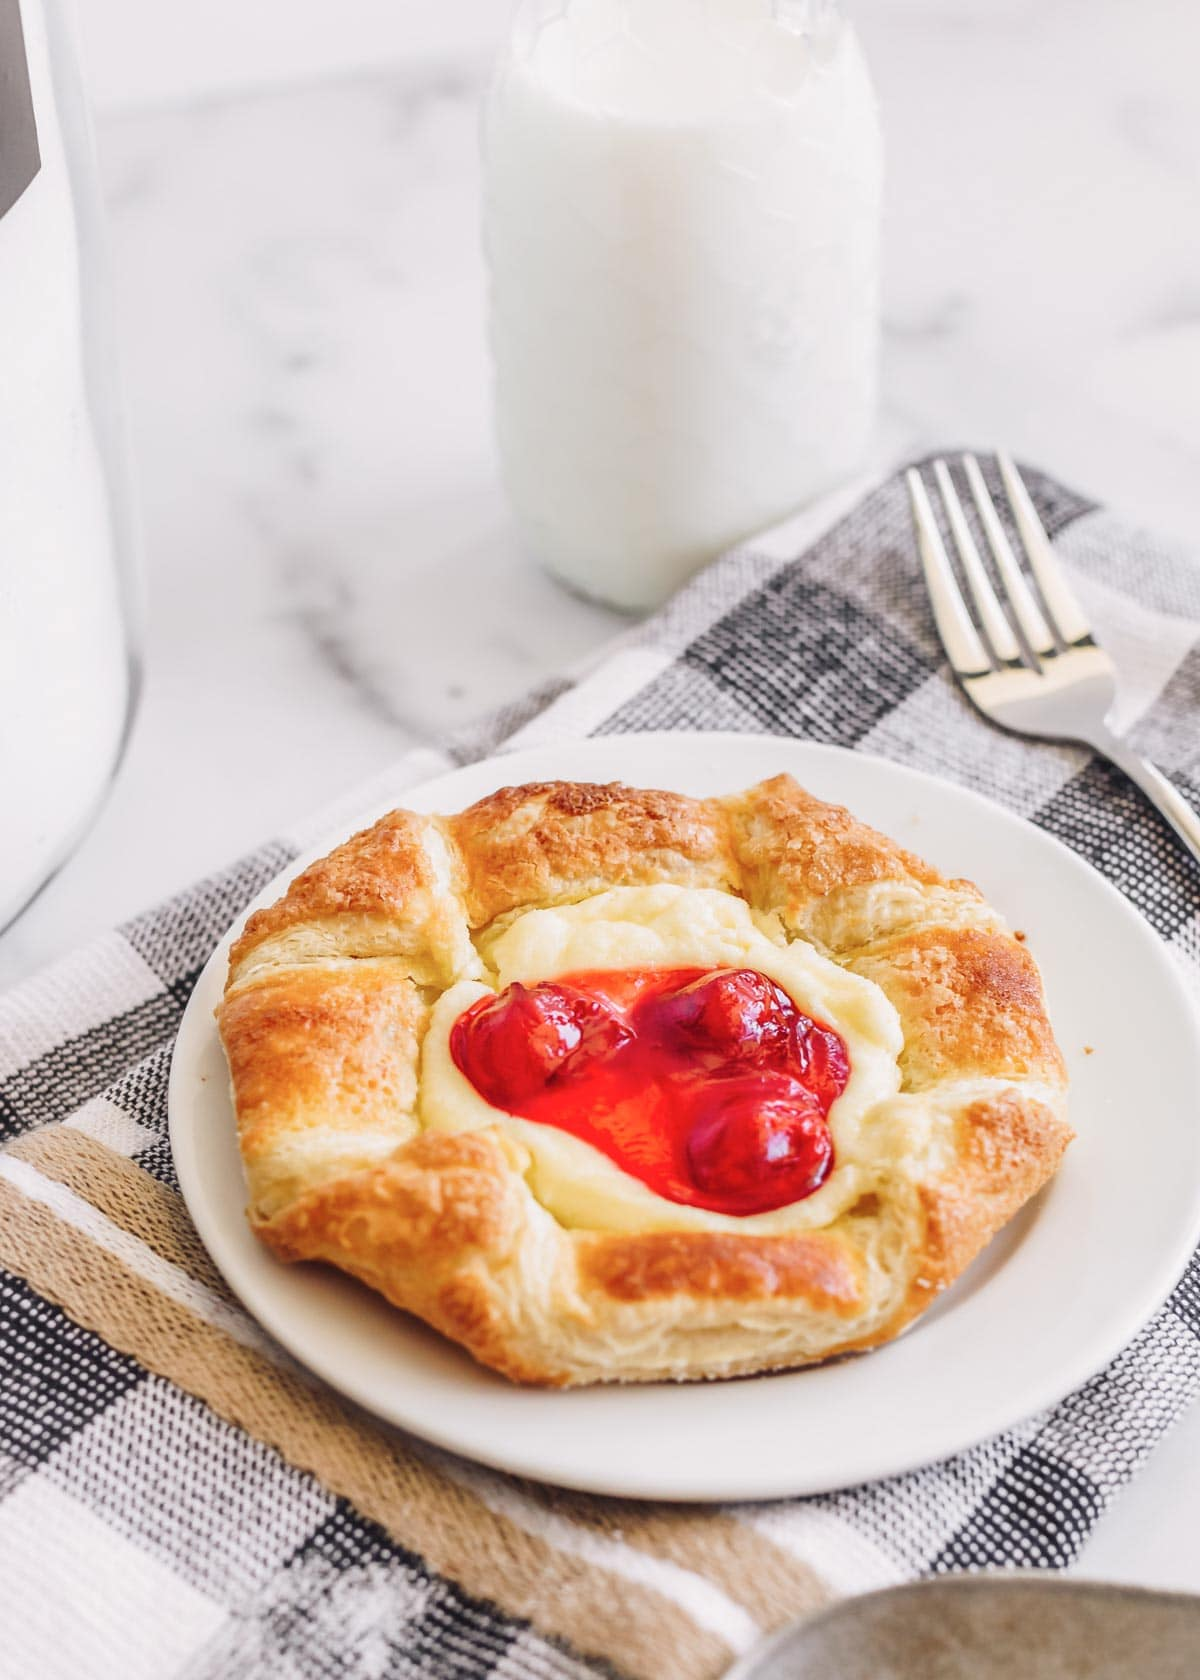 Cream cheese danish with cherry filling on a white plate